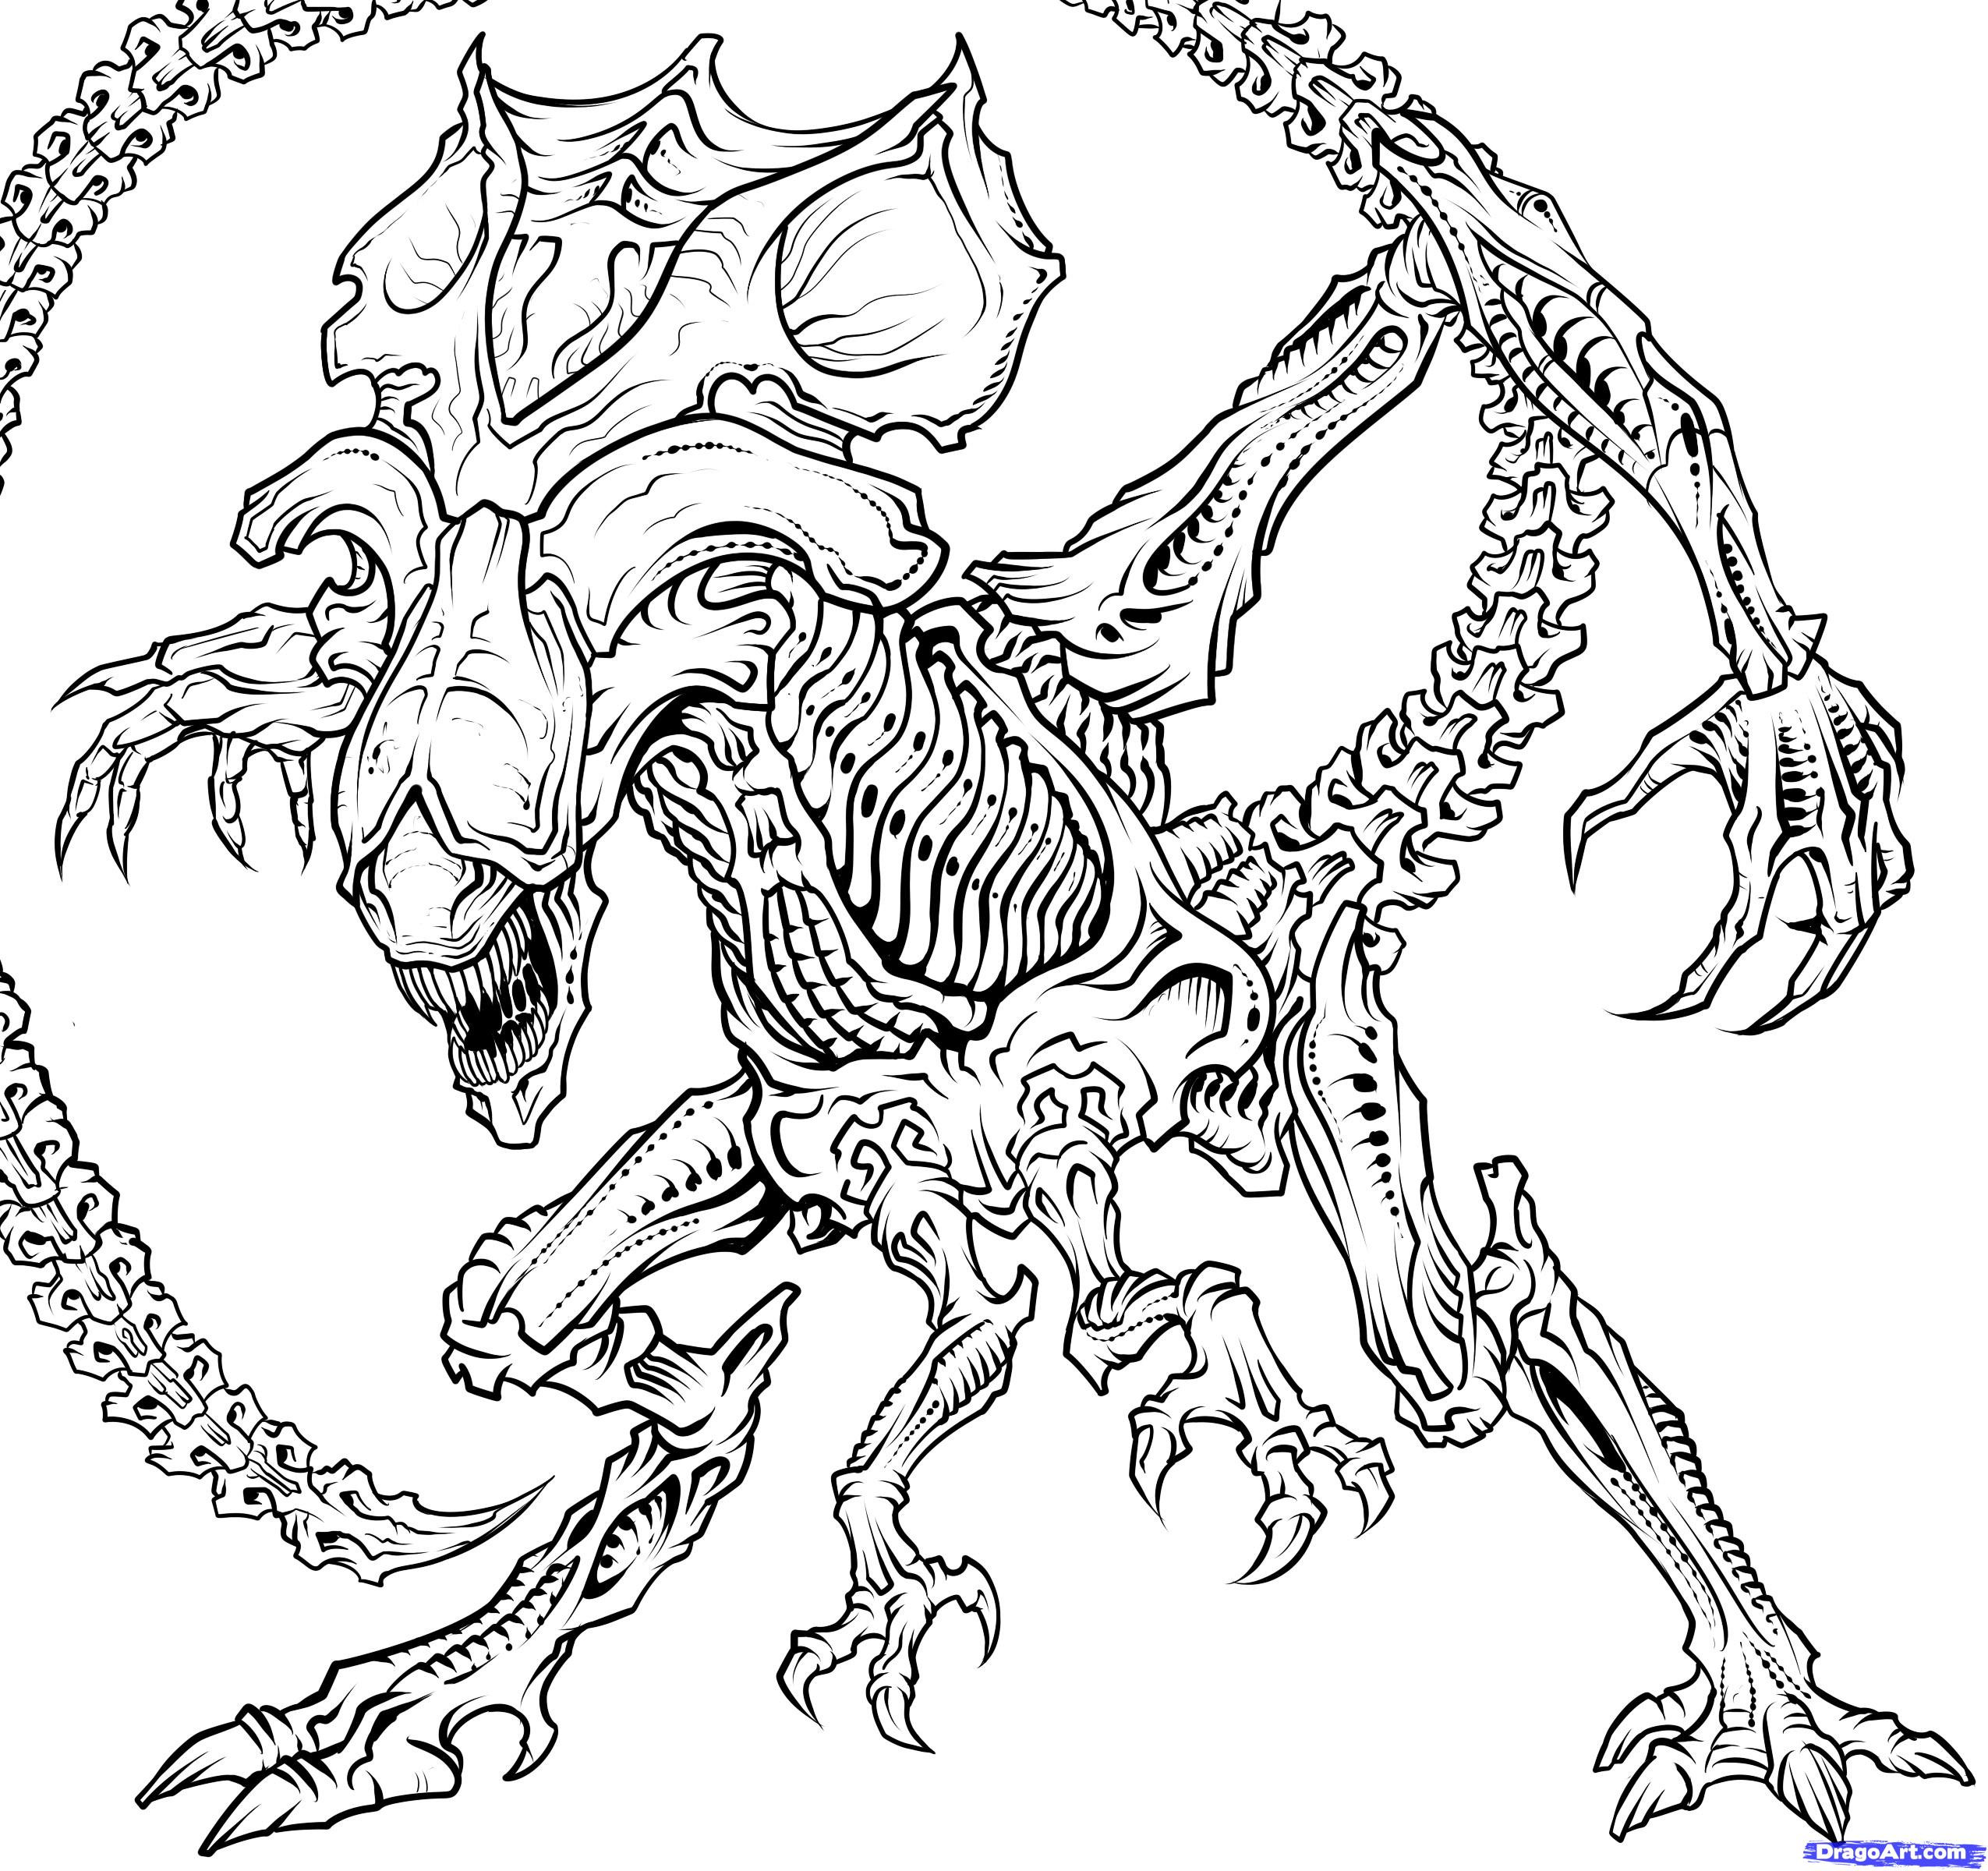 Aliens Coloring Pages  How to Draw a Queen Alien Queen Xenomorph Step by Step